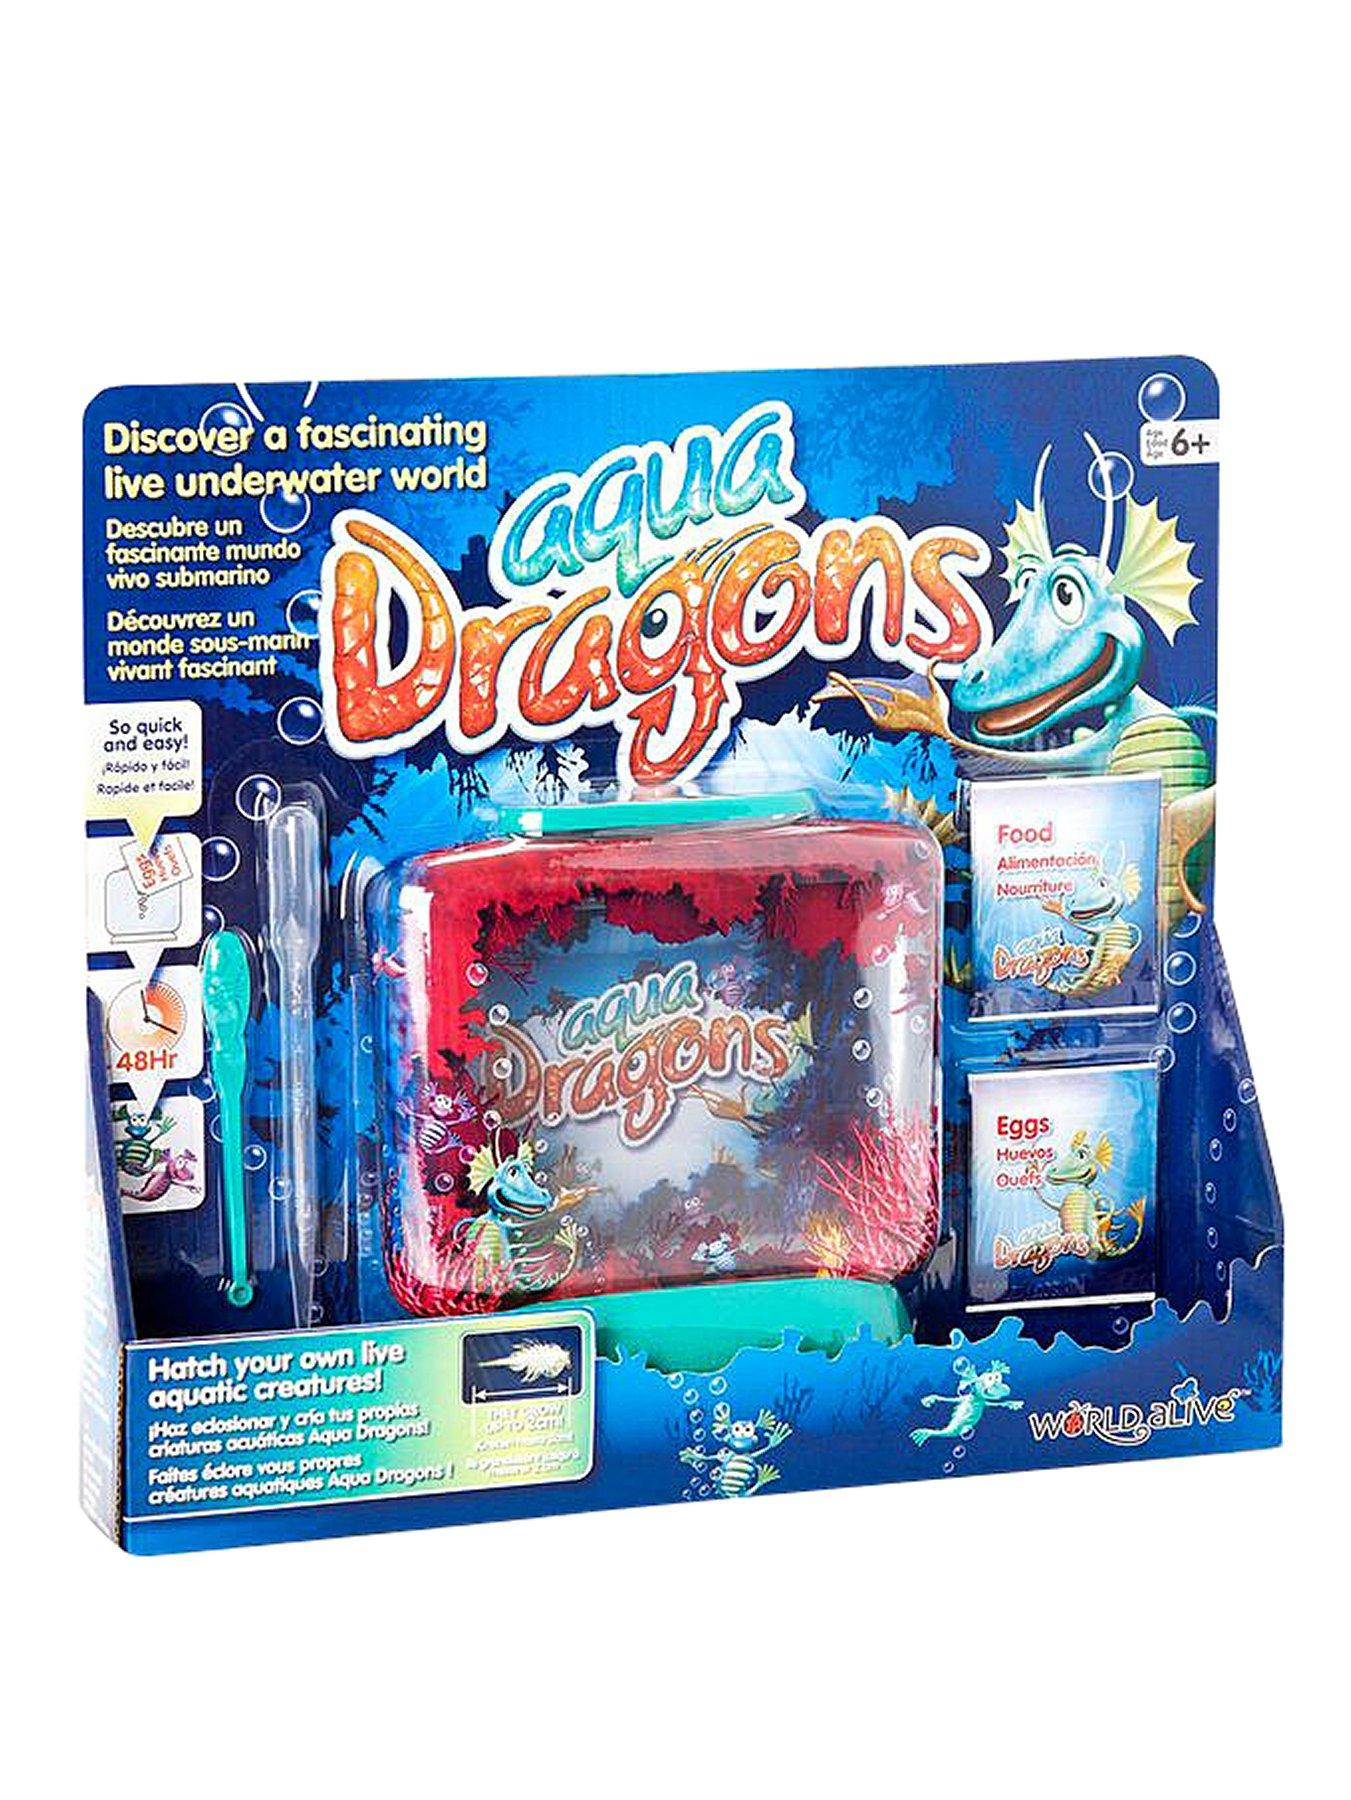 Compare prices for Aqua Dragons Underwater World